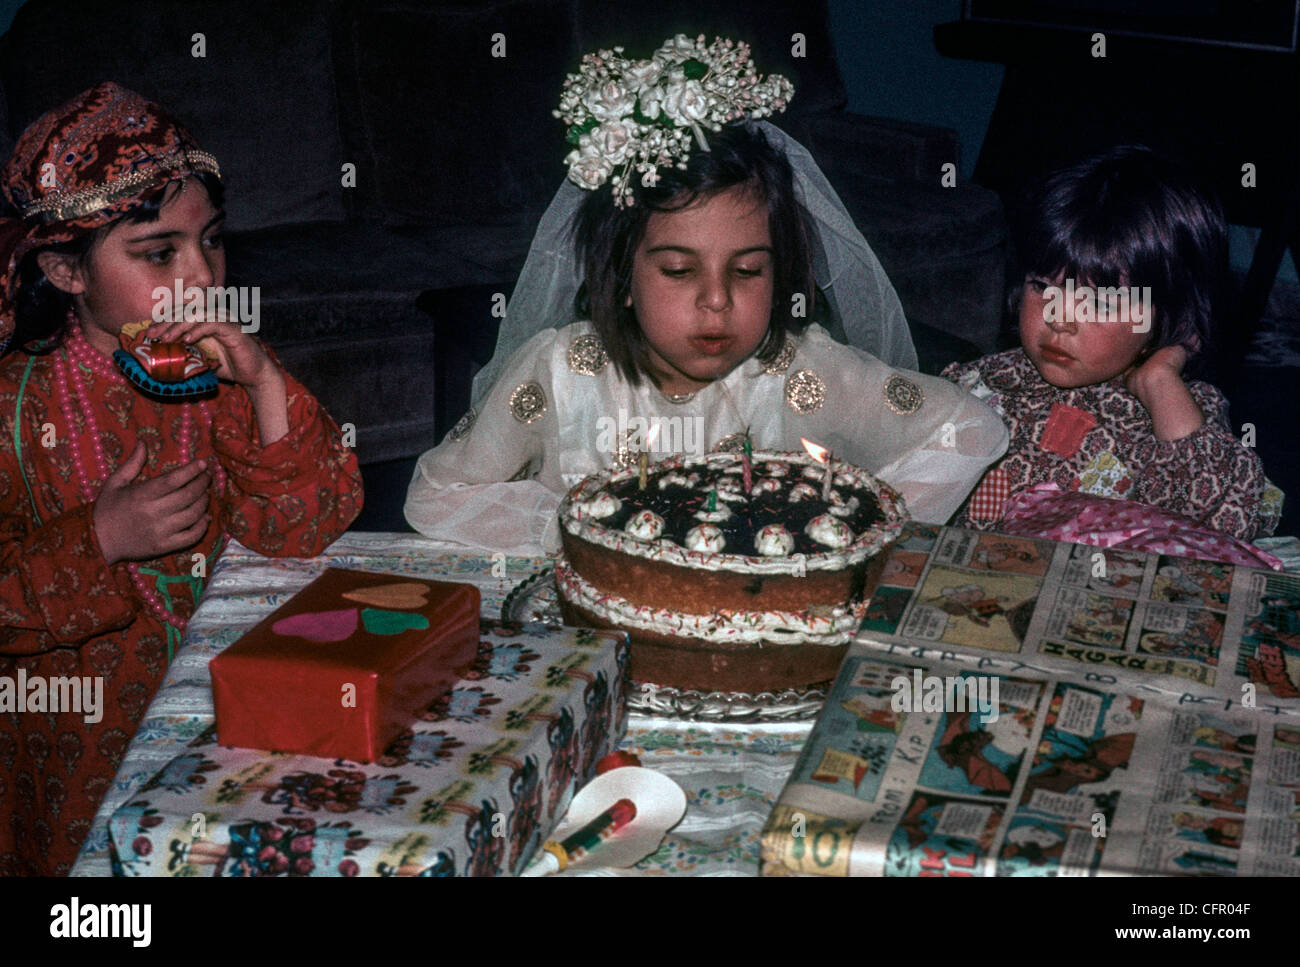 ARAK, IRAN: Young Iranian girl dressed as a bride, celebrates her fifth birthday by blowing out candles on her cake - Stock Image